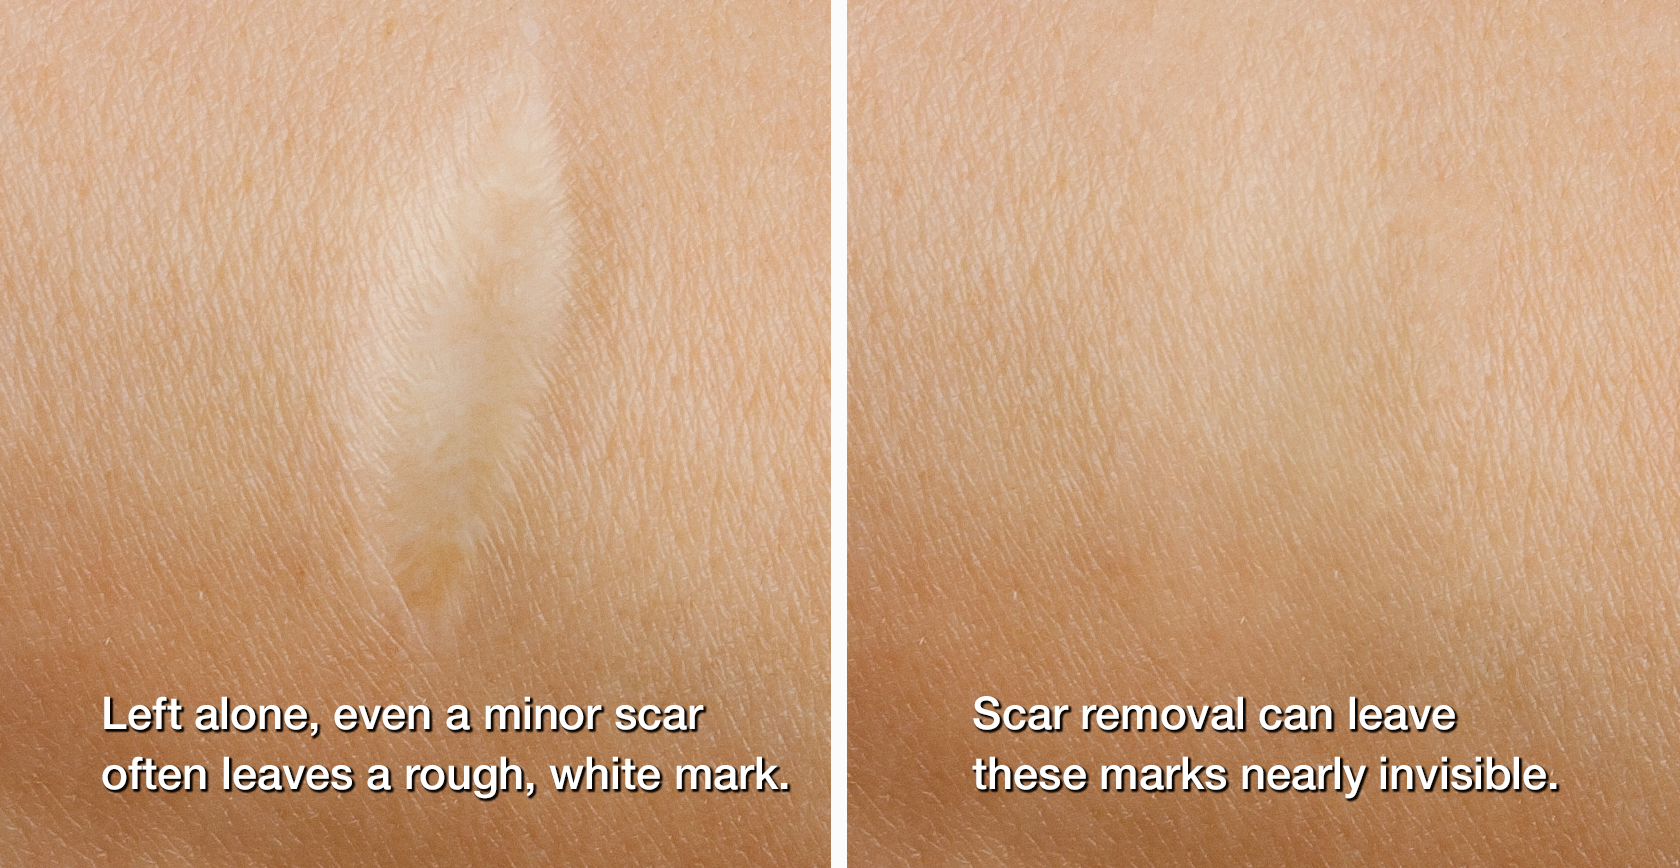 Left: Healed but visible scar. Right: Nearly invisible scar